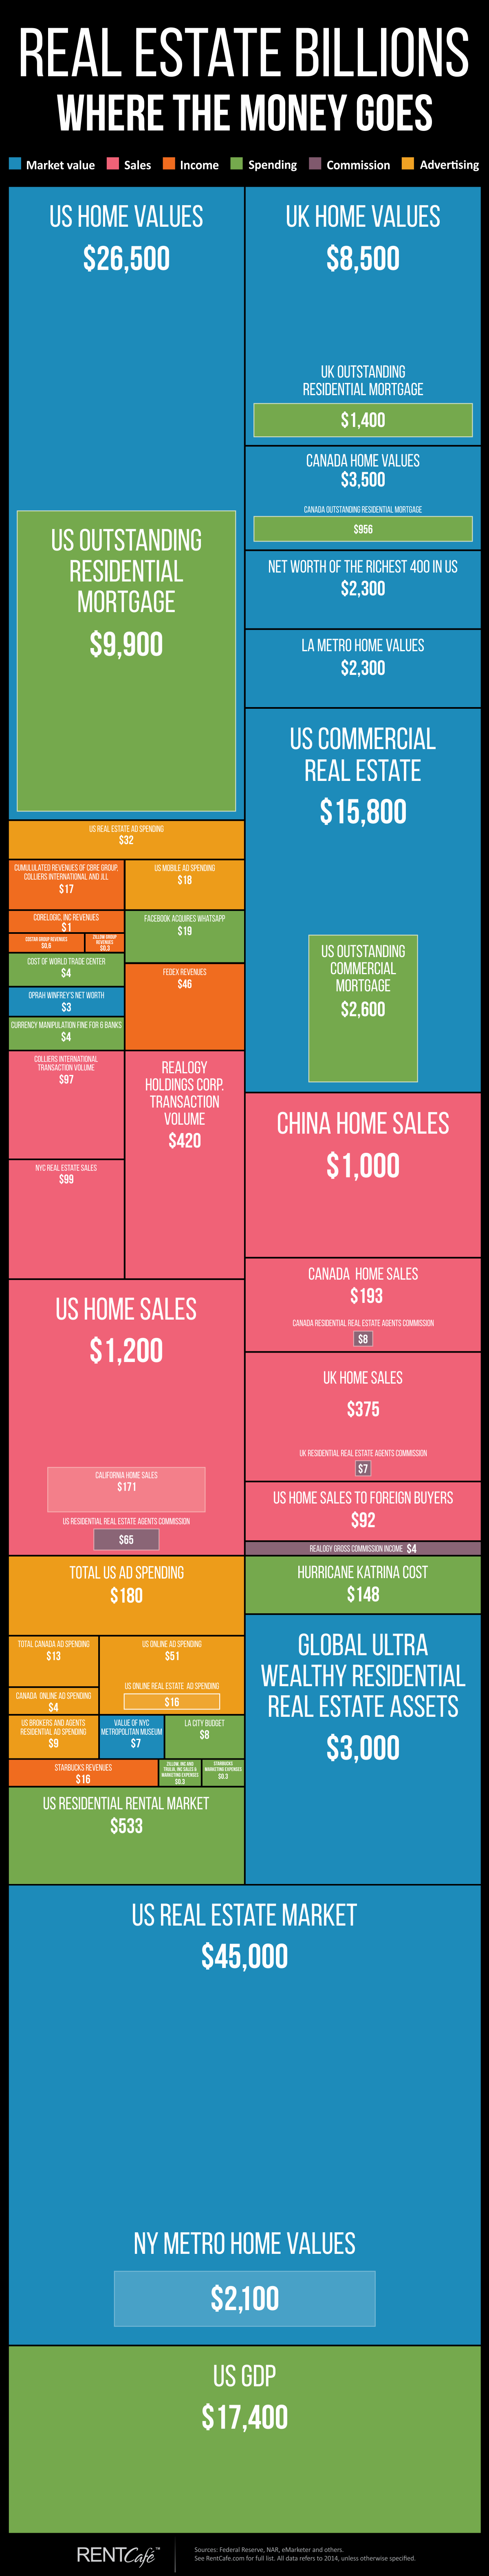 Real estate billions: expenses, income, market values, advertising